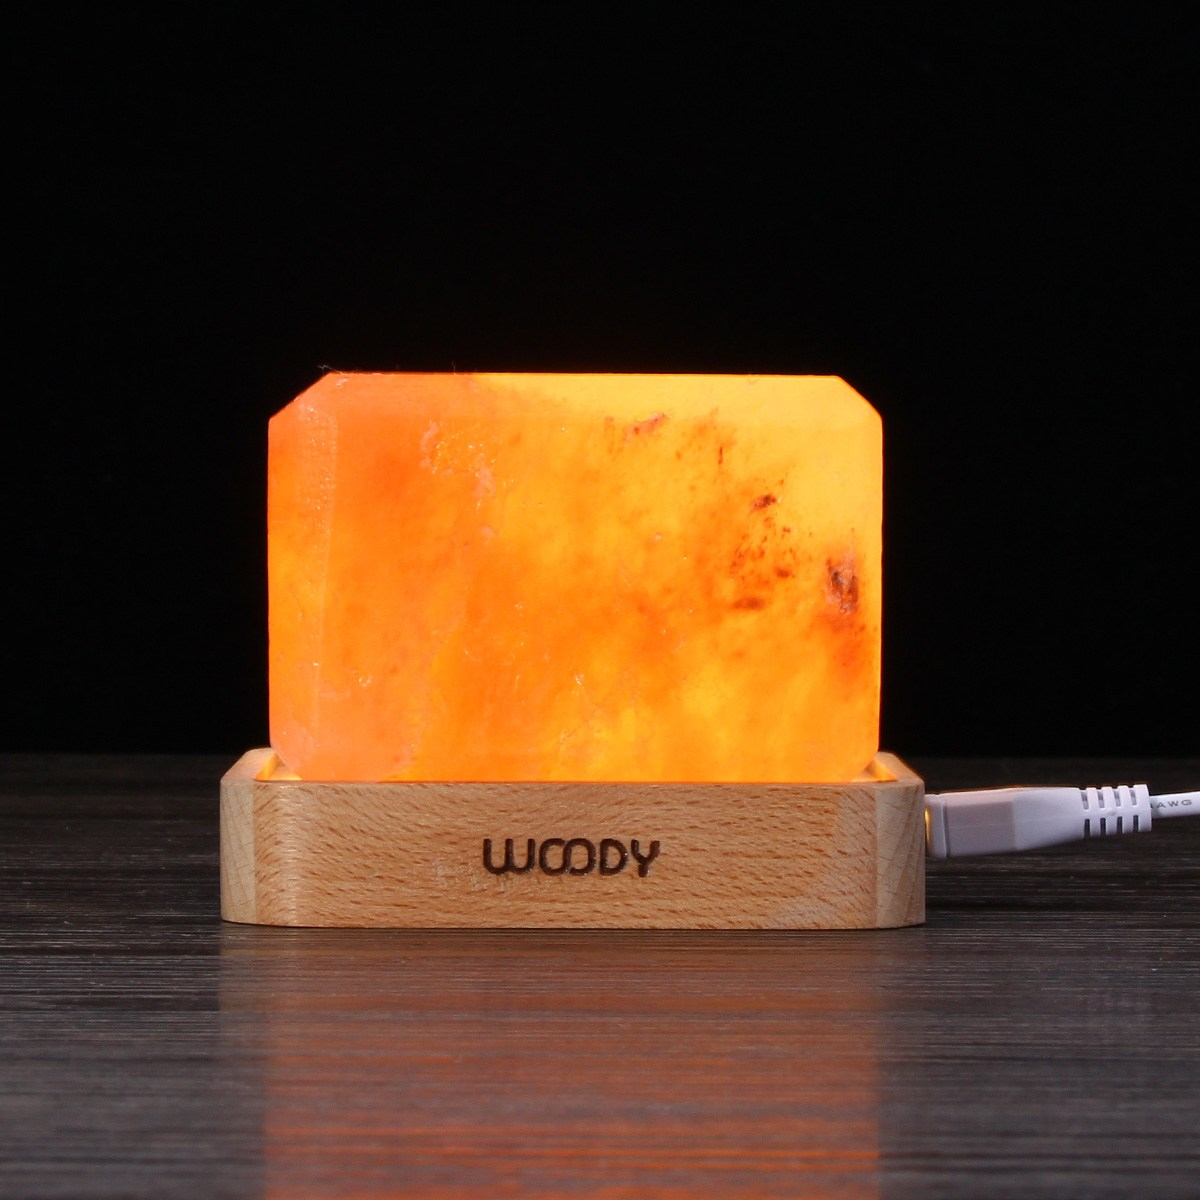 Crystal Himalayan Salt Lamp Air Purifier Night Light USB Power Desk Lamp Bedside Bar Coffee Shop Home Decor Warm White Lighting home decor cartoon sheep bedside desk led night light